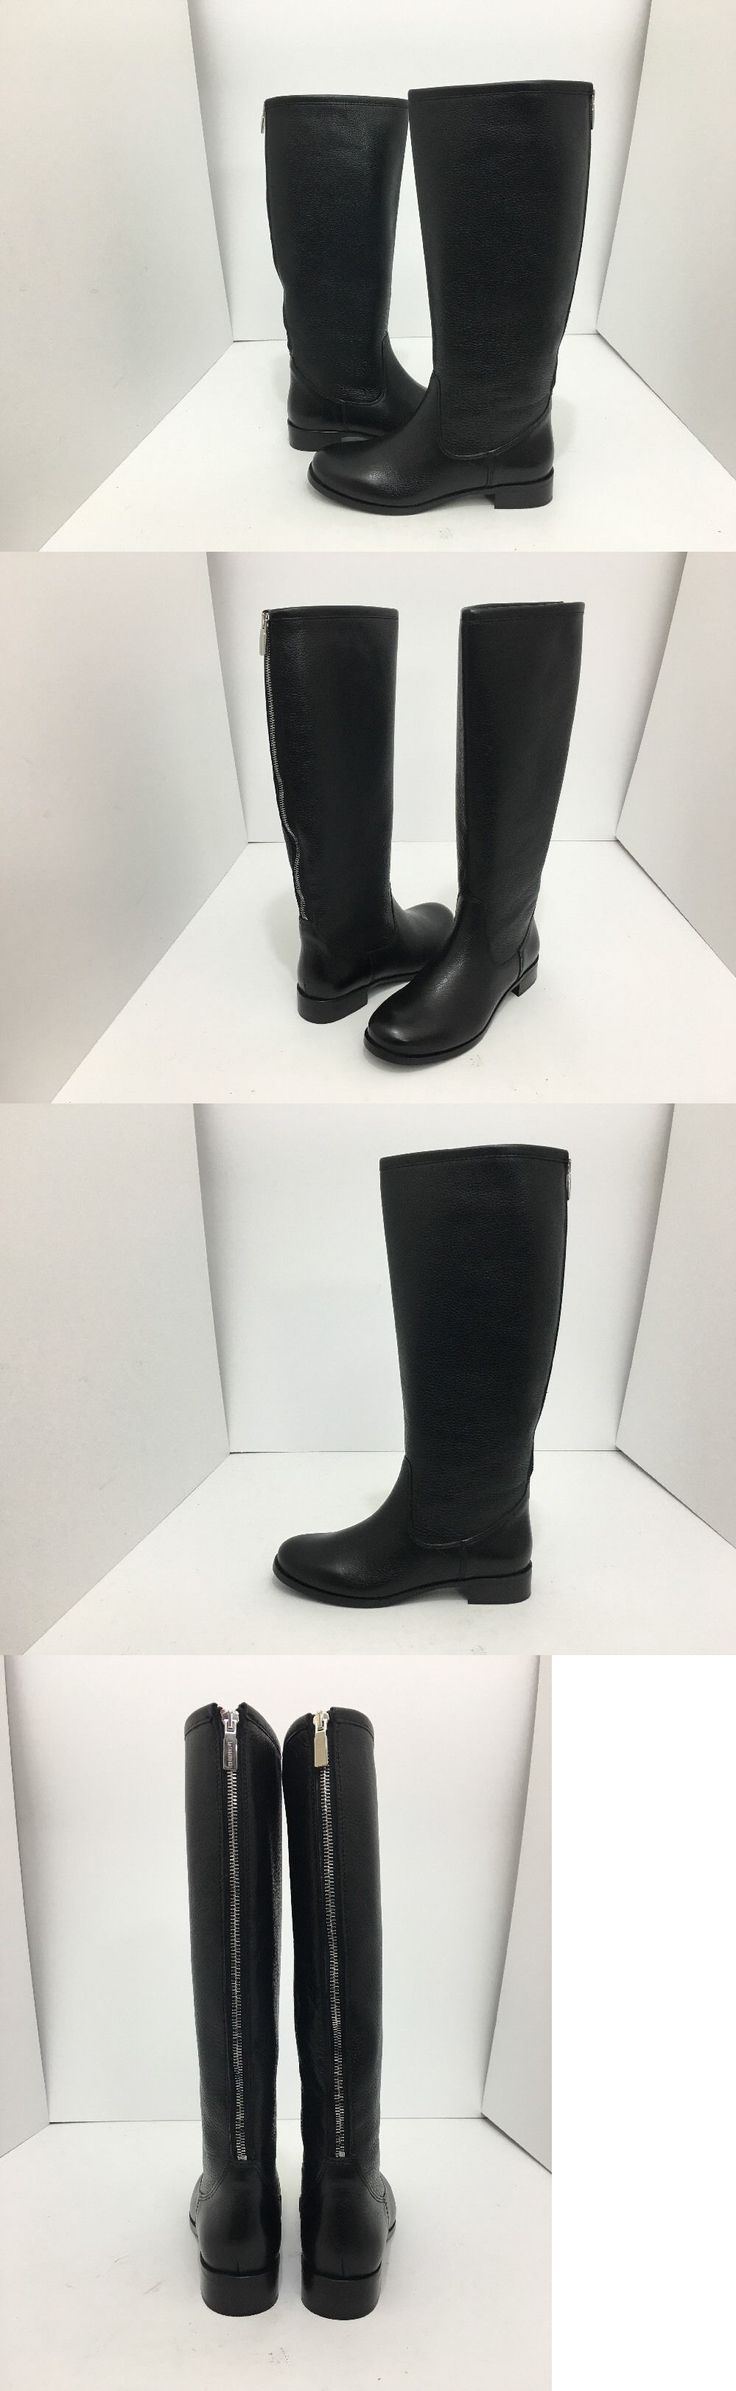 Women Boots: La Canadienne Sarit Black Leather Waterproof Womens Knee High Boots Size Us 9.5 -> BUY IT NOW ONLY: $119.2 on eBay!